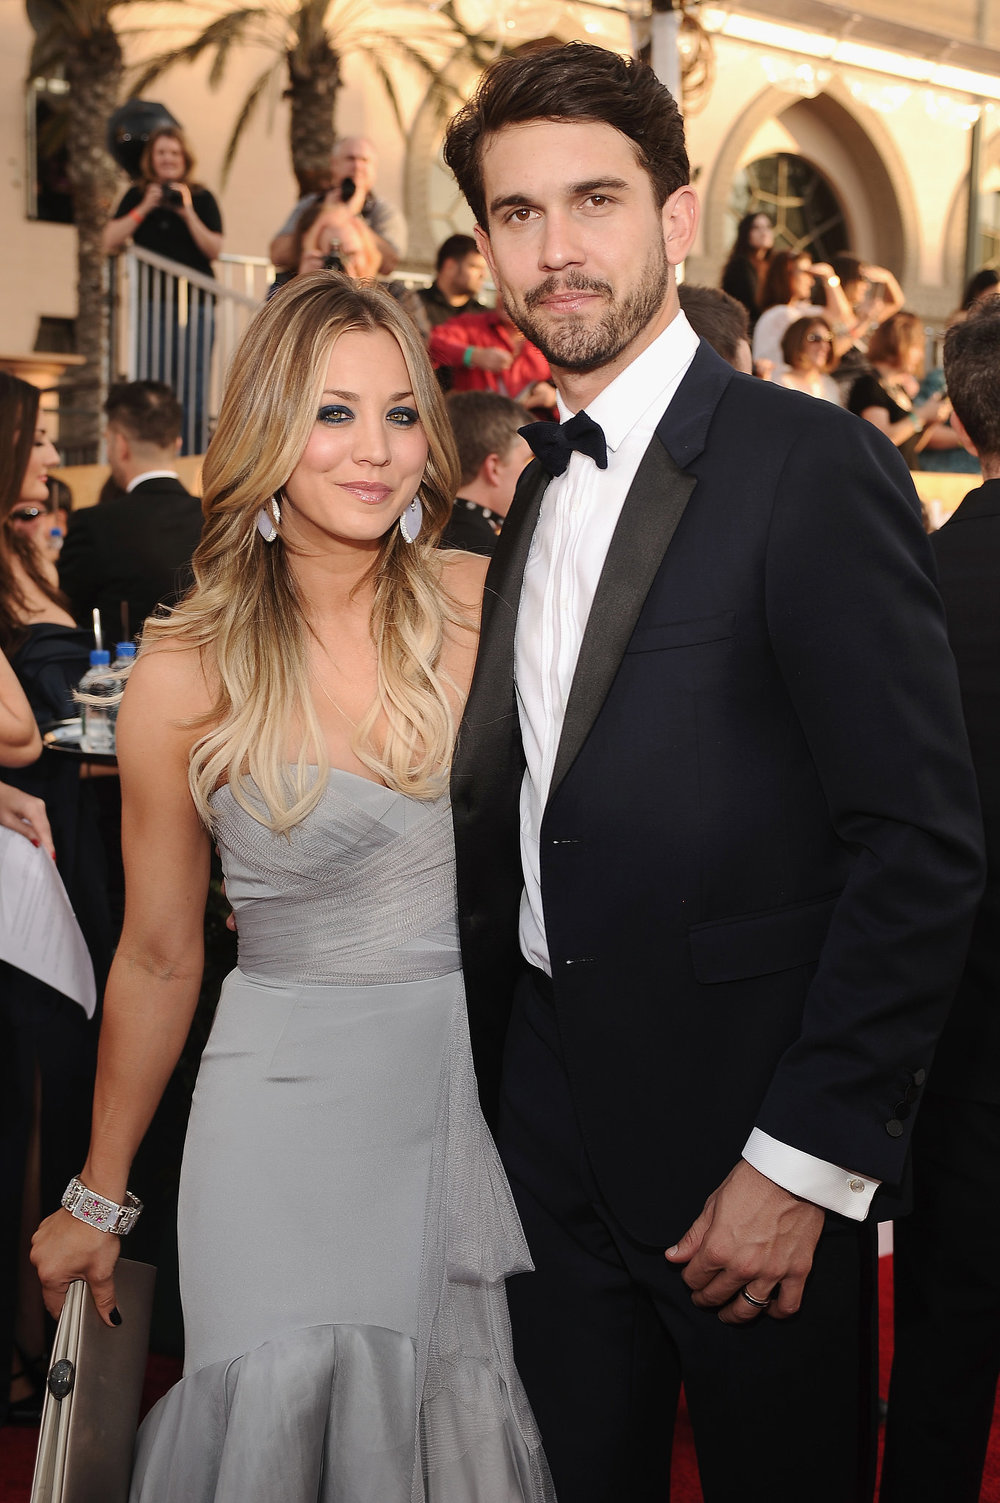 Kaley-Cuoco-stayed-close-her-new-husband-Ryan-Sweeting.jpg